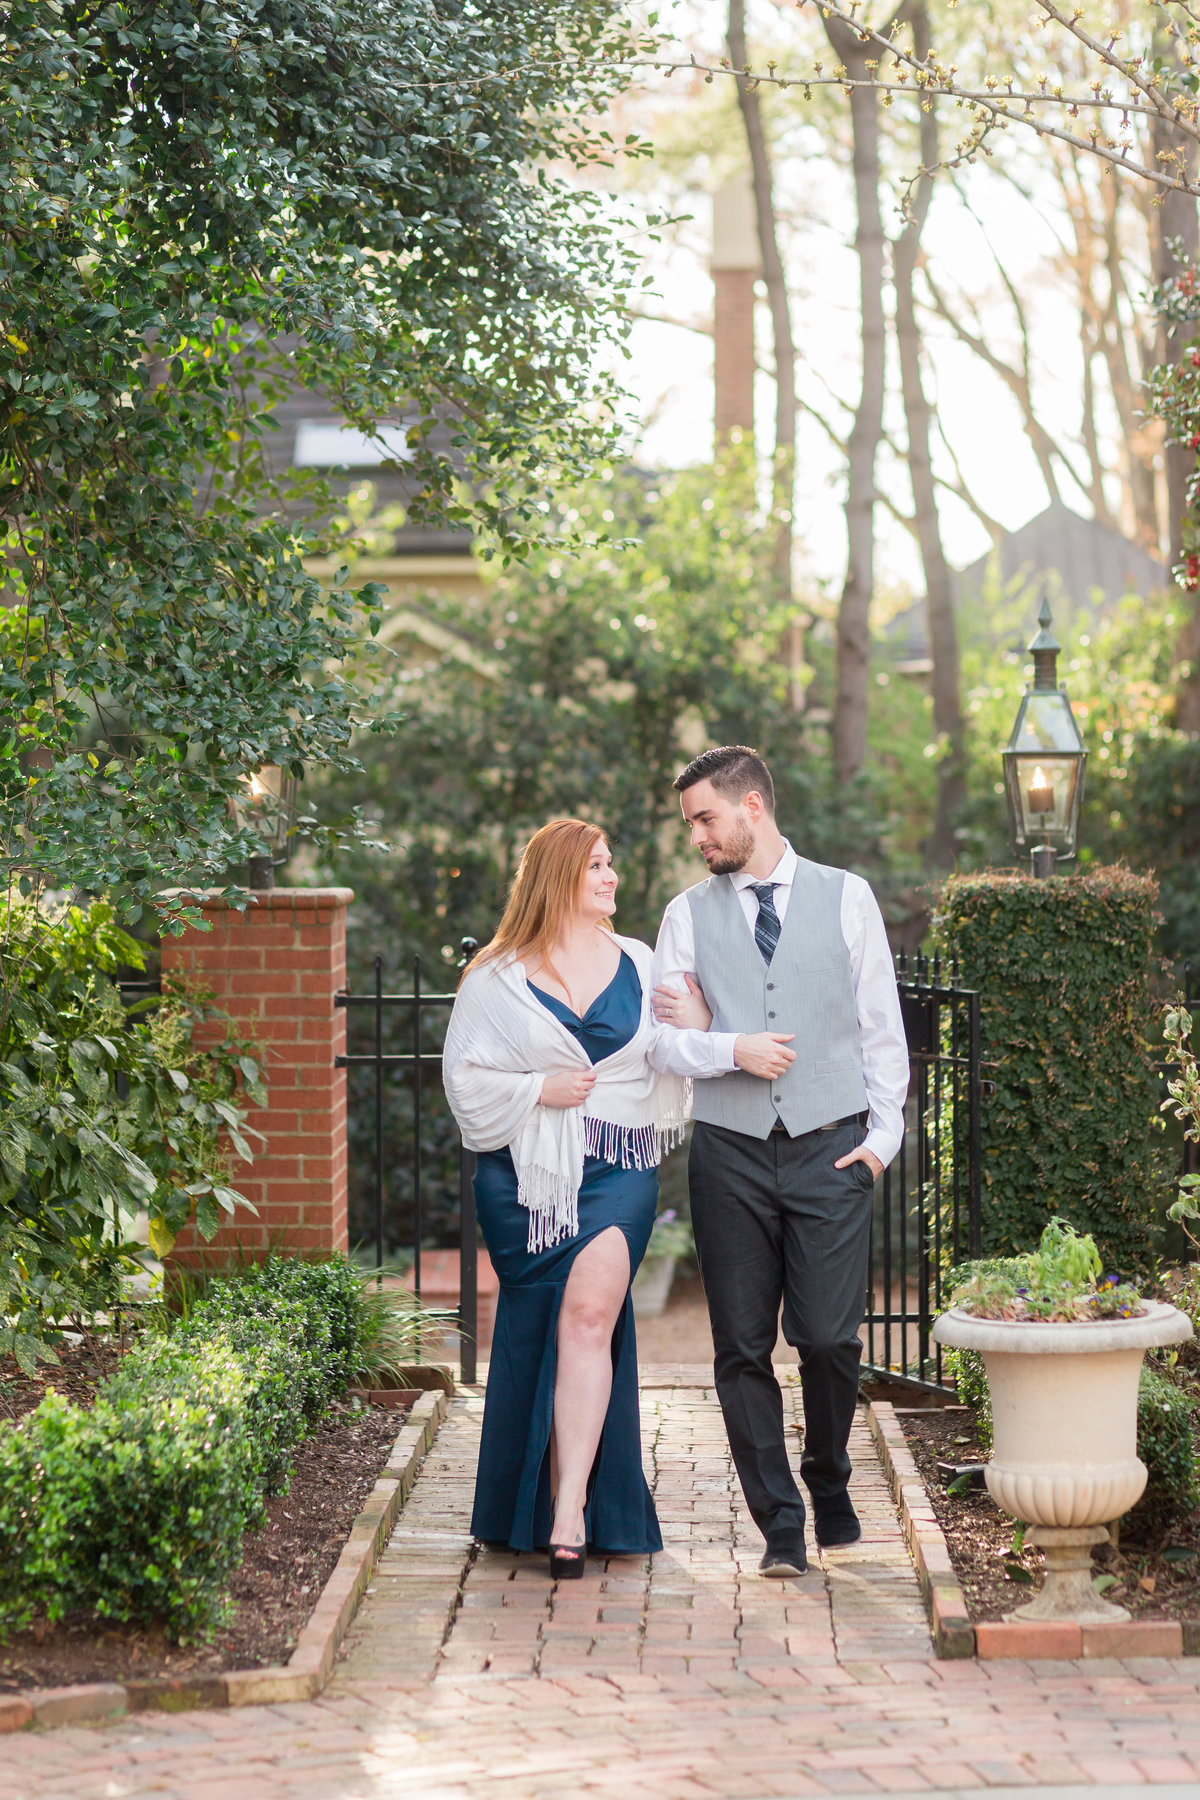 Meagan and Michael Engaged-Samantha Laffoon Photography-103